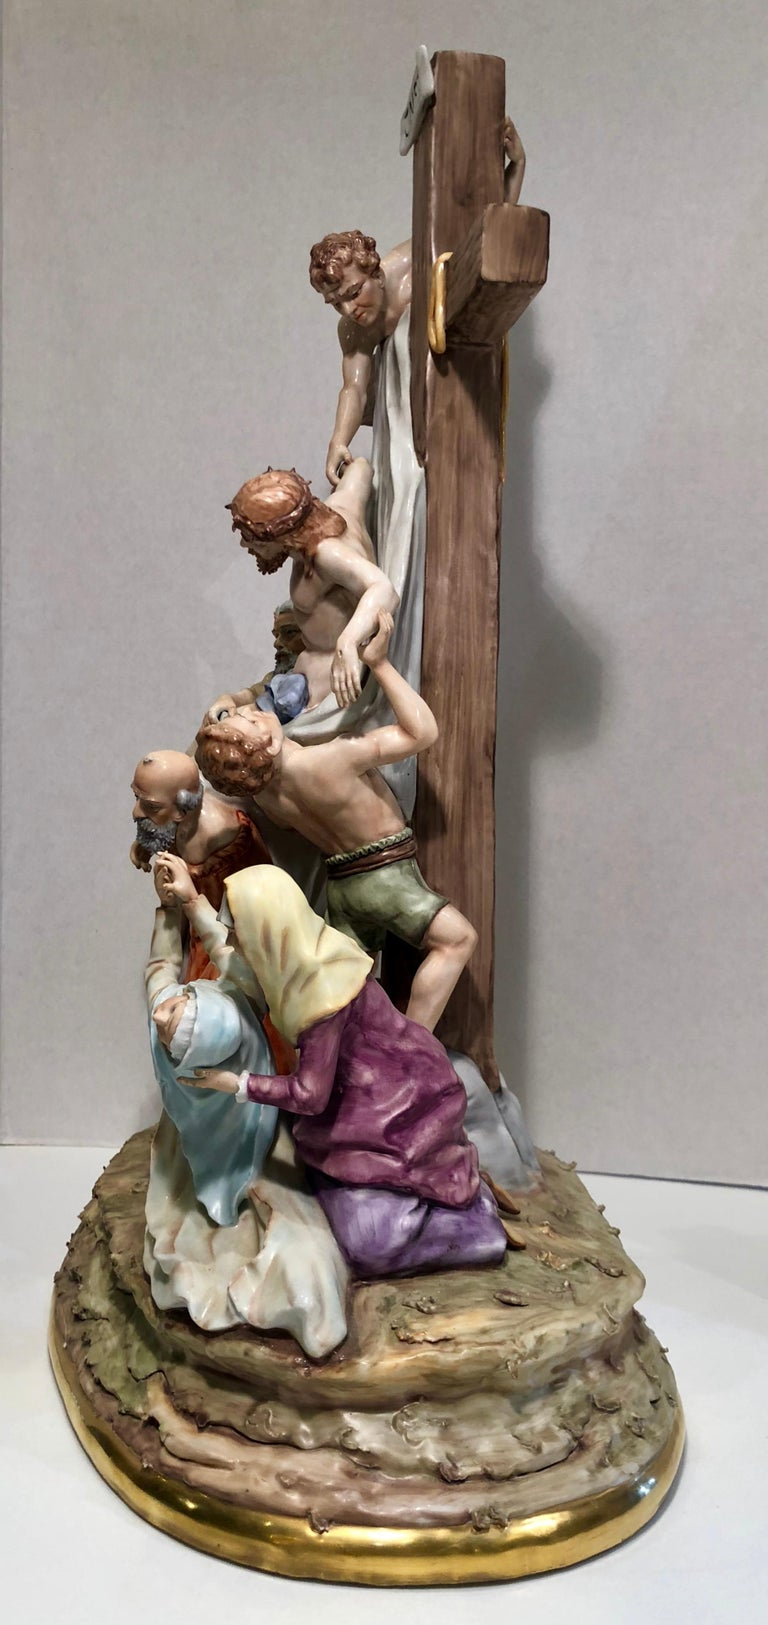 Other Sitzendorf Germany 13th Station of the Cross Museum Quality Porcelain Scene For Sale